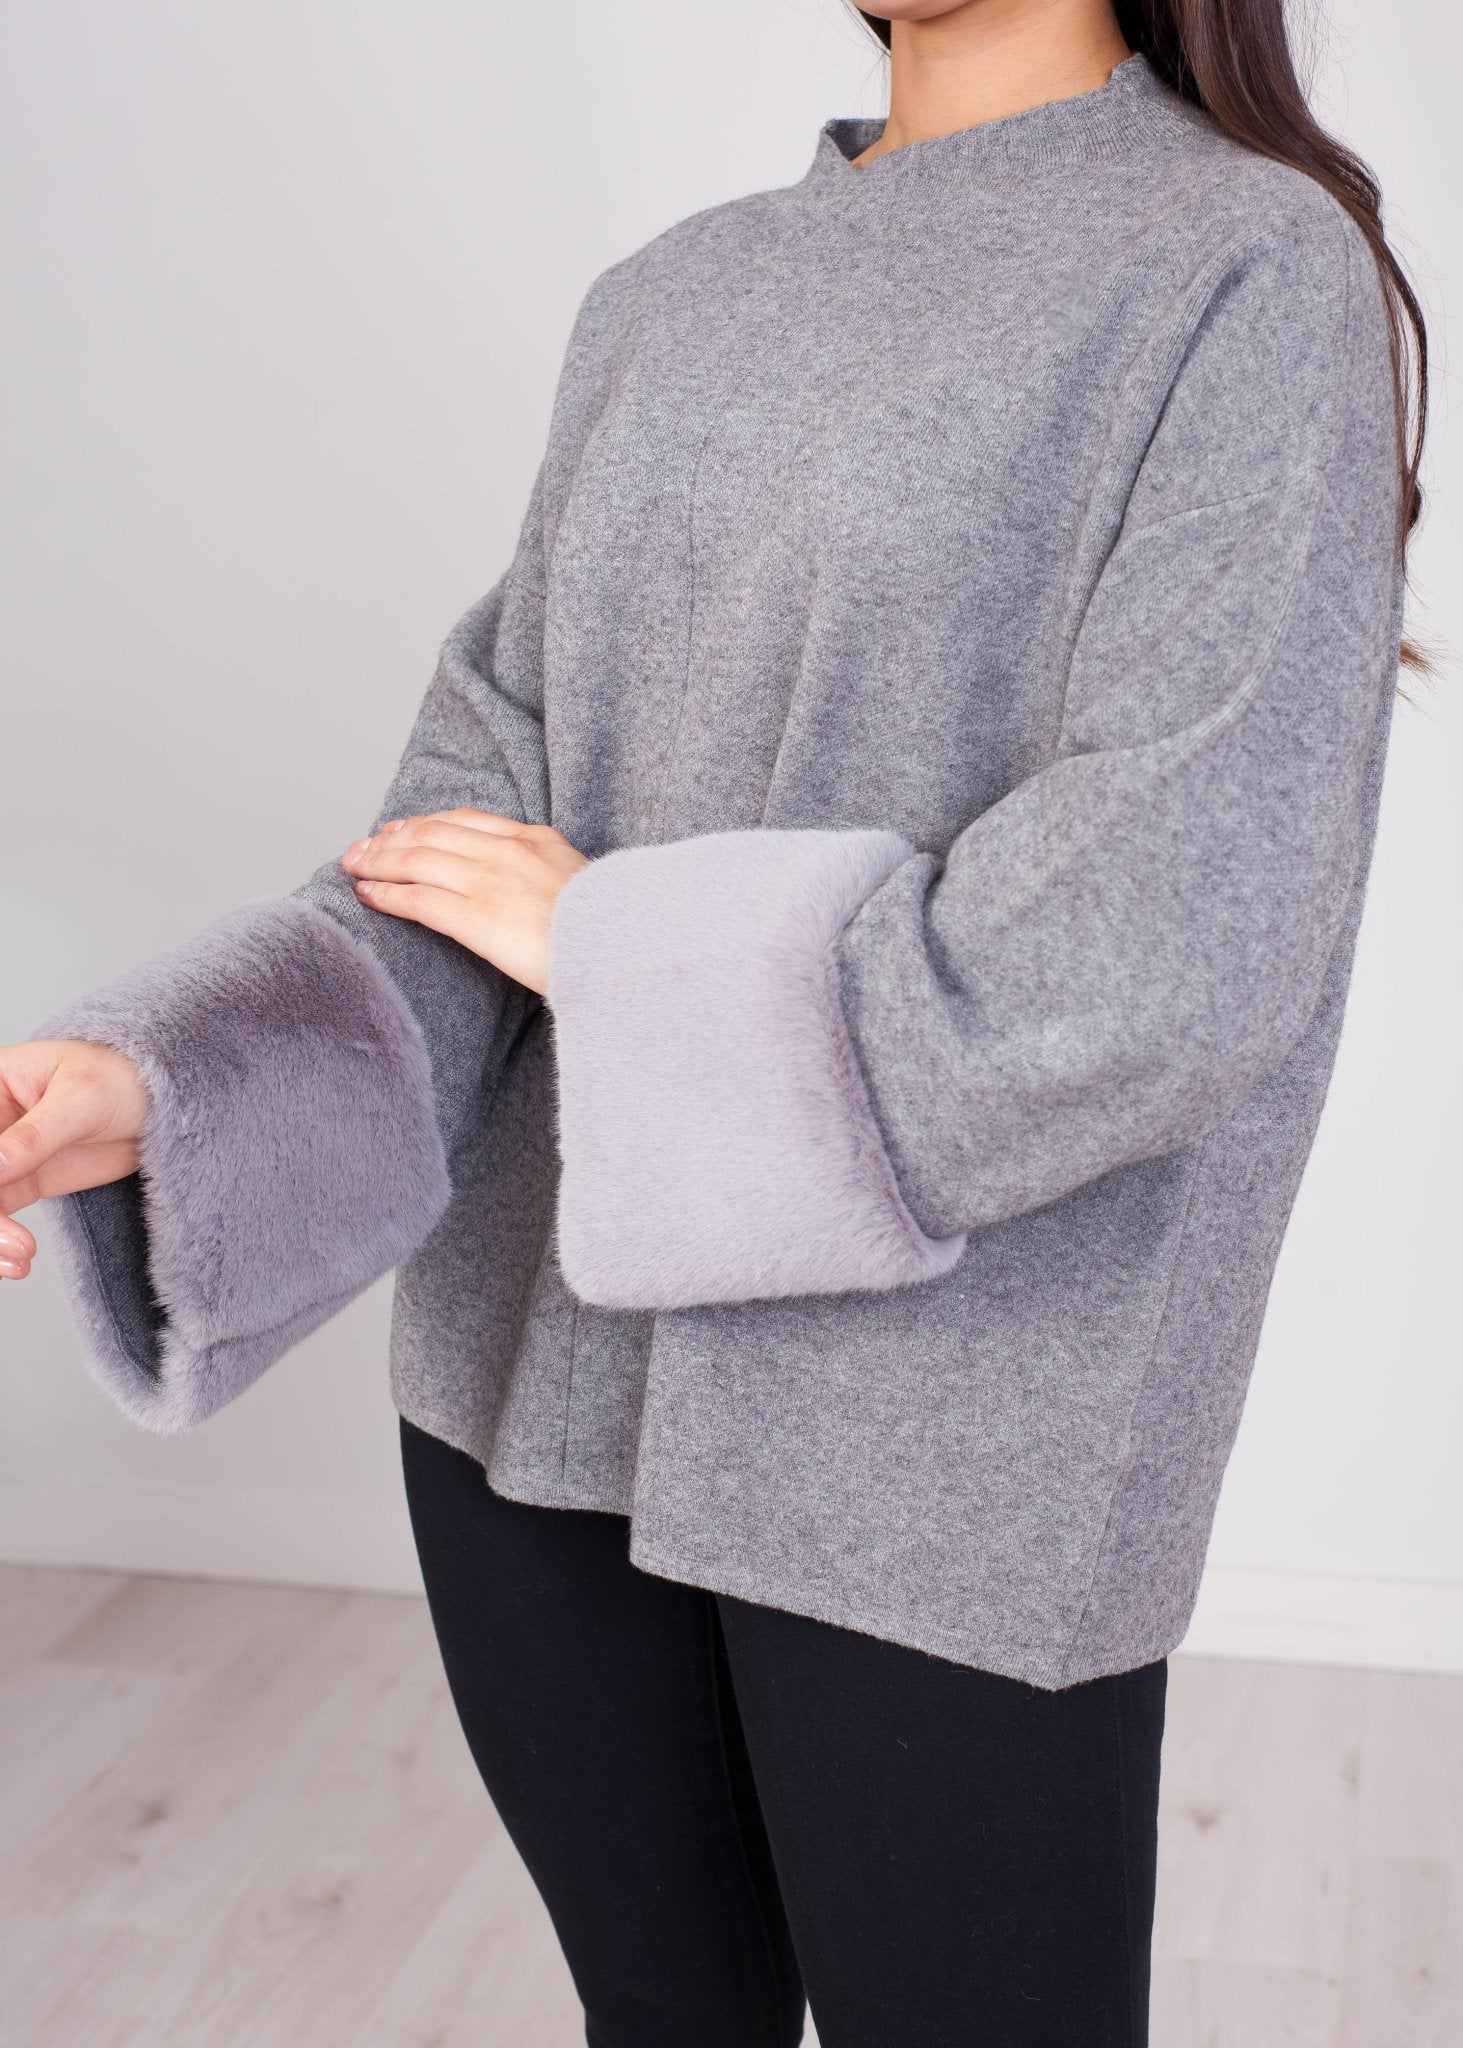 Penny Jumper With Faux Fur Cuff In Grey - The Walk in Wardrobe